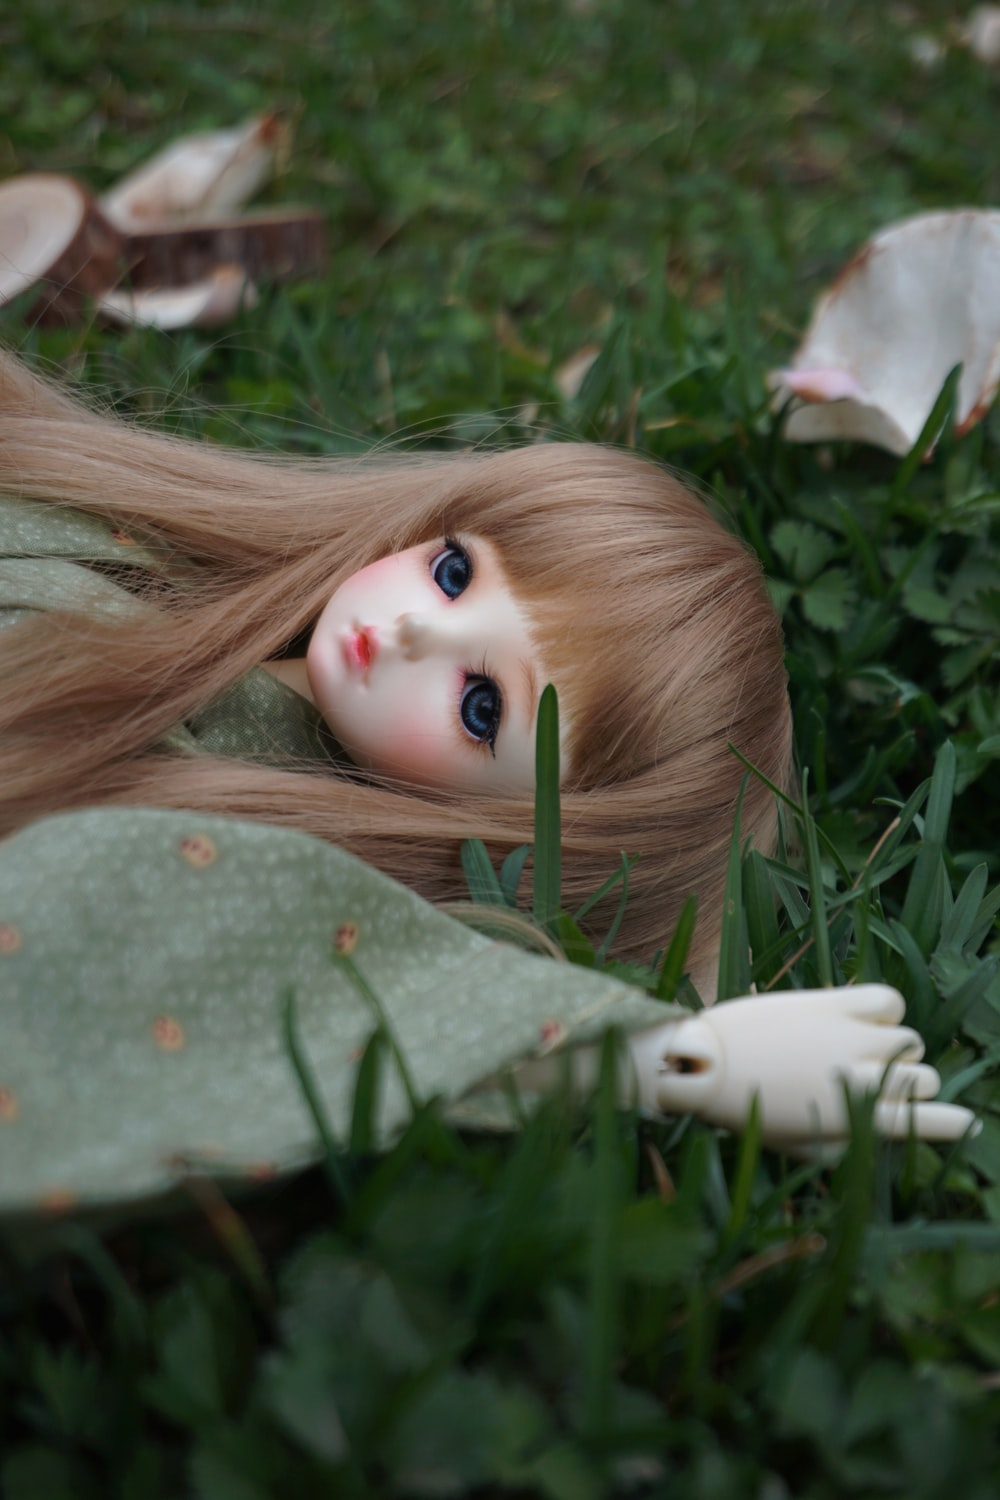 female doll in green dress laying on grass field